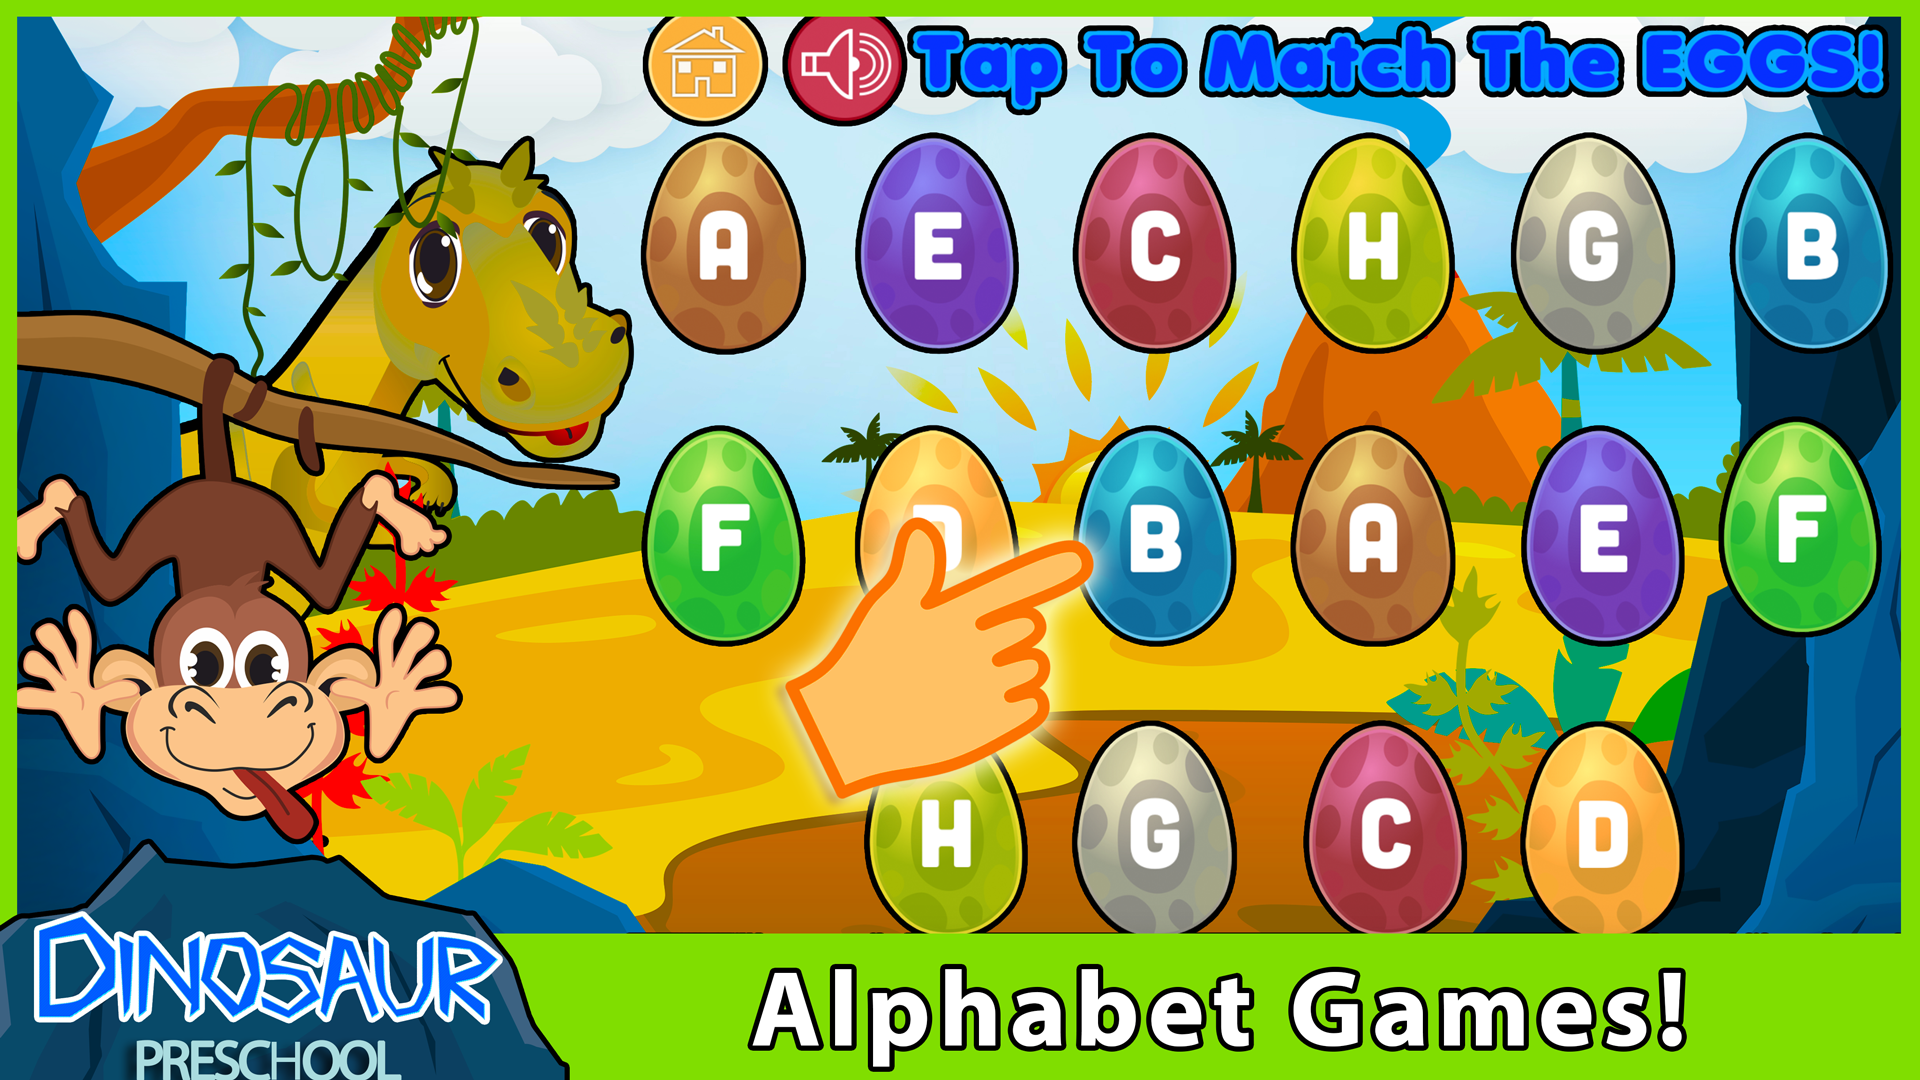 Amazon.com: Dinosaur Games for Kids Free - Preschool Dino ...